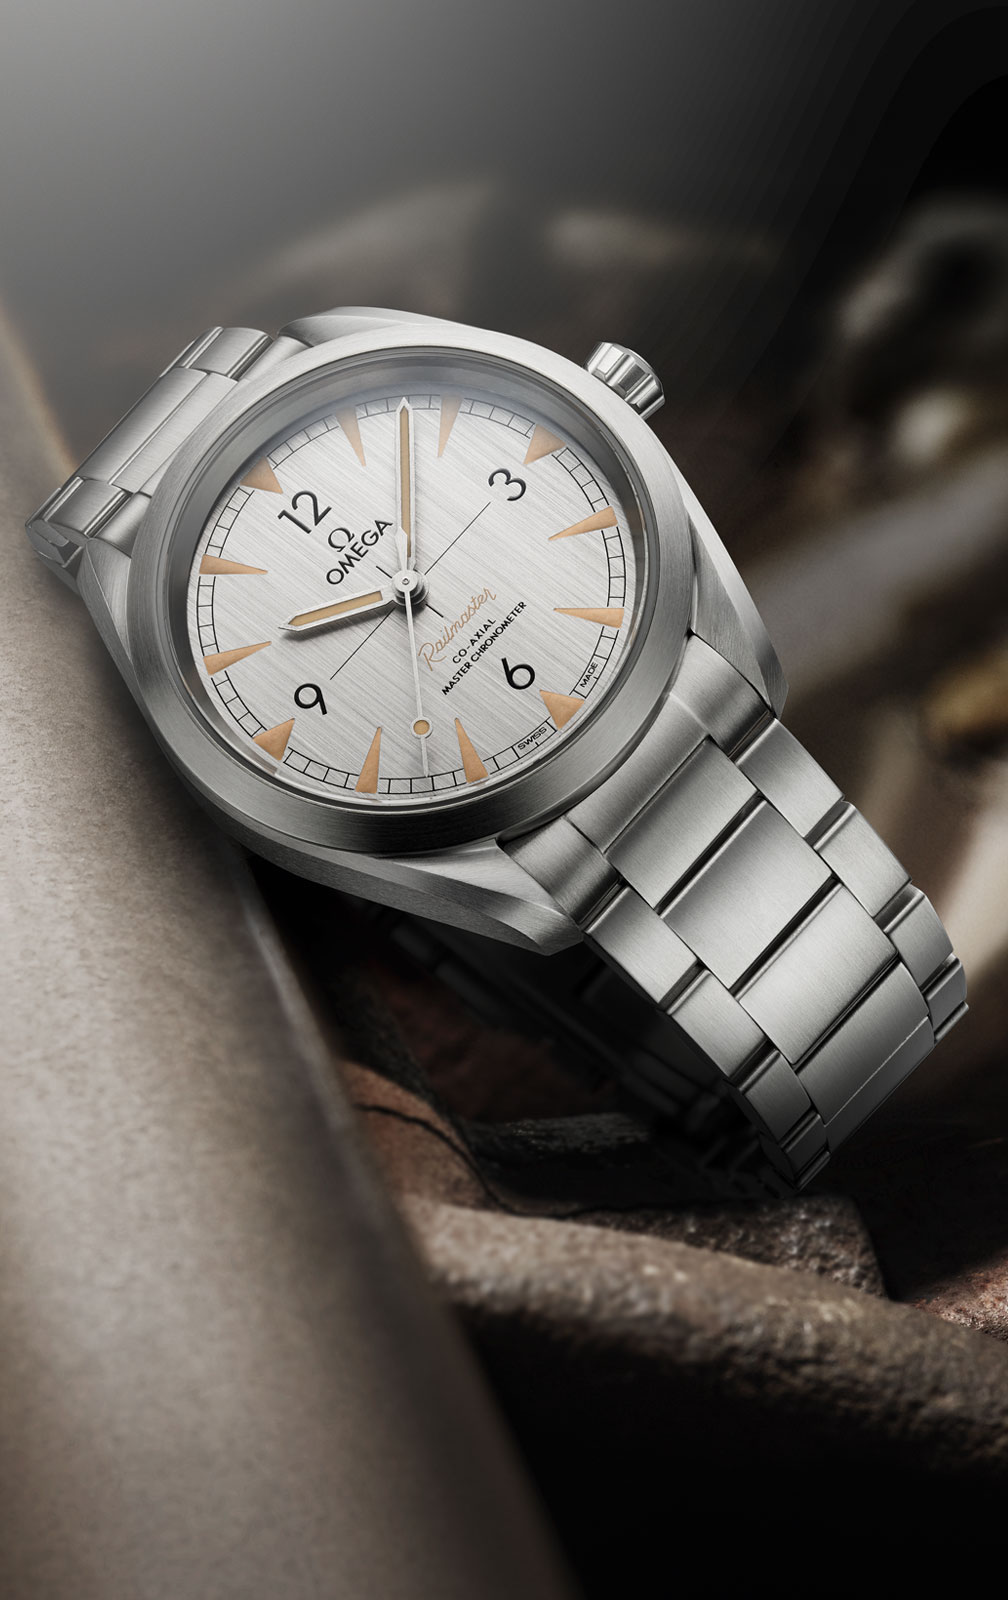 Omega Railmaster watch in stainless steel with a brushed steel dial